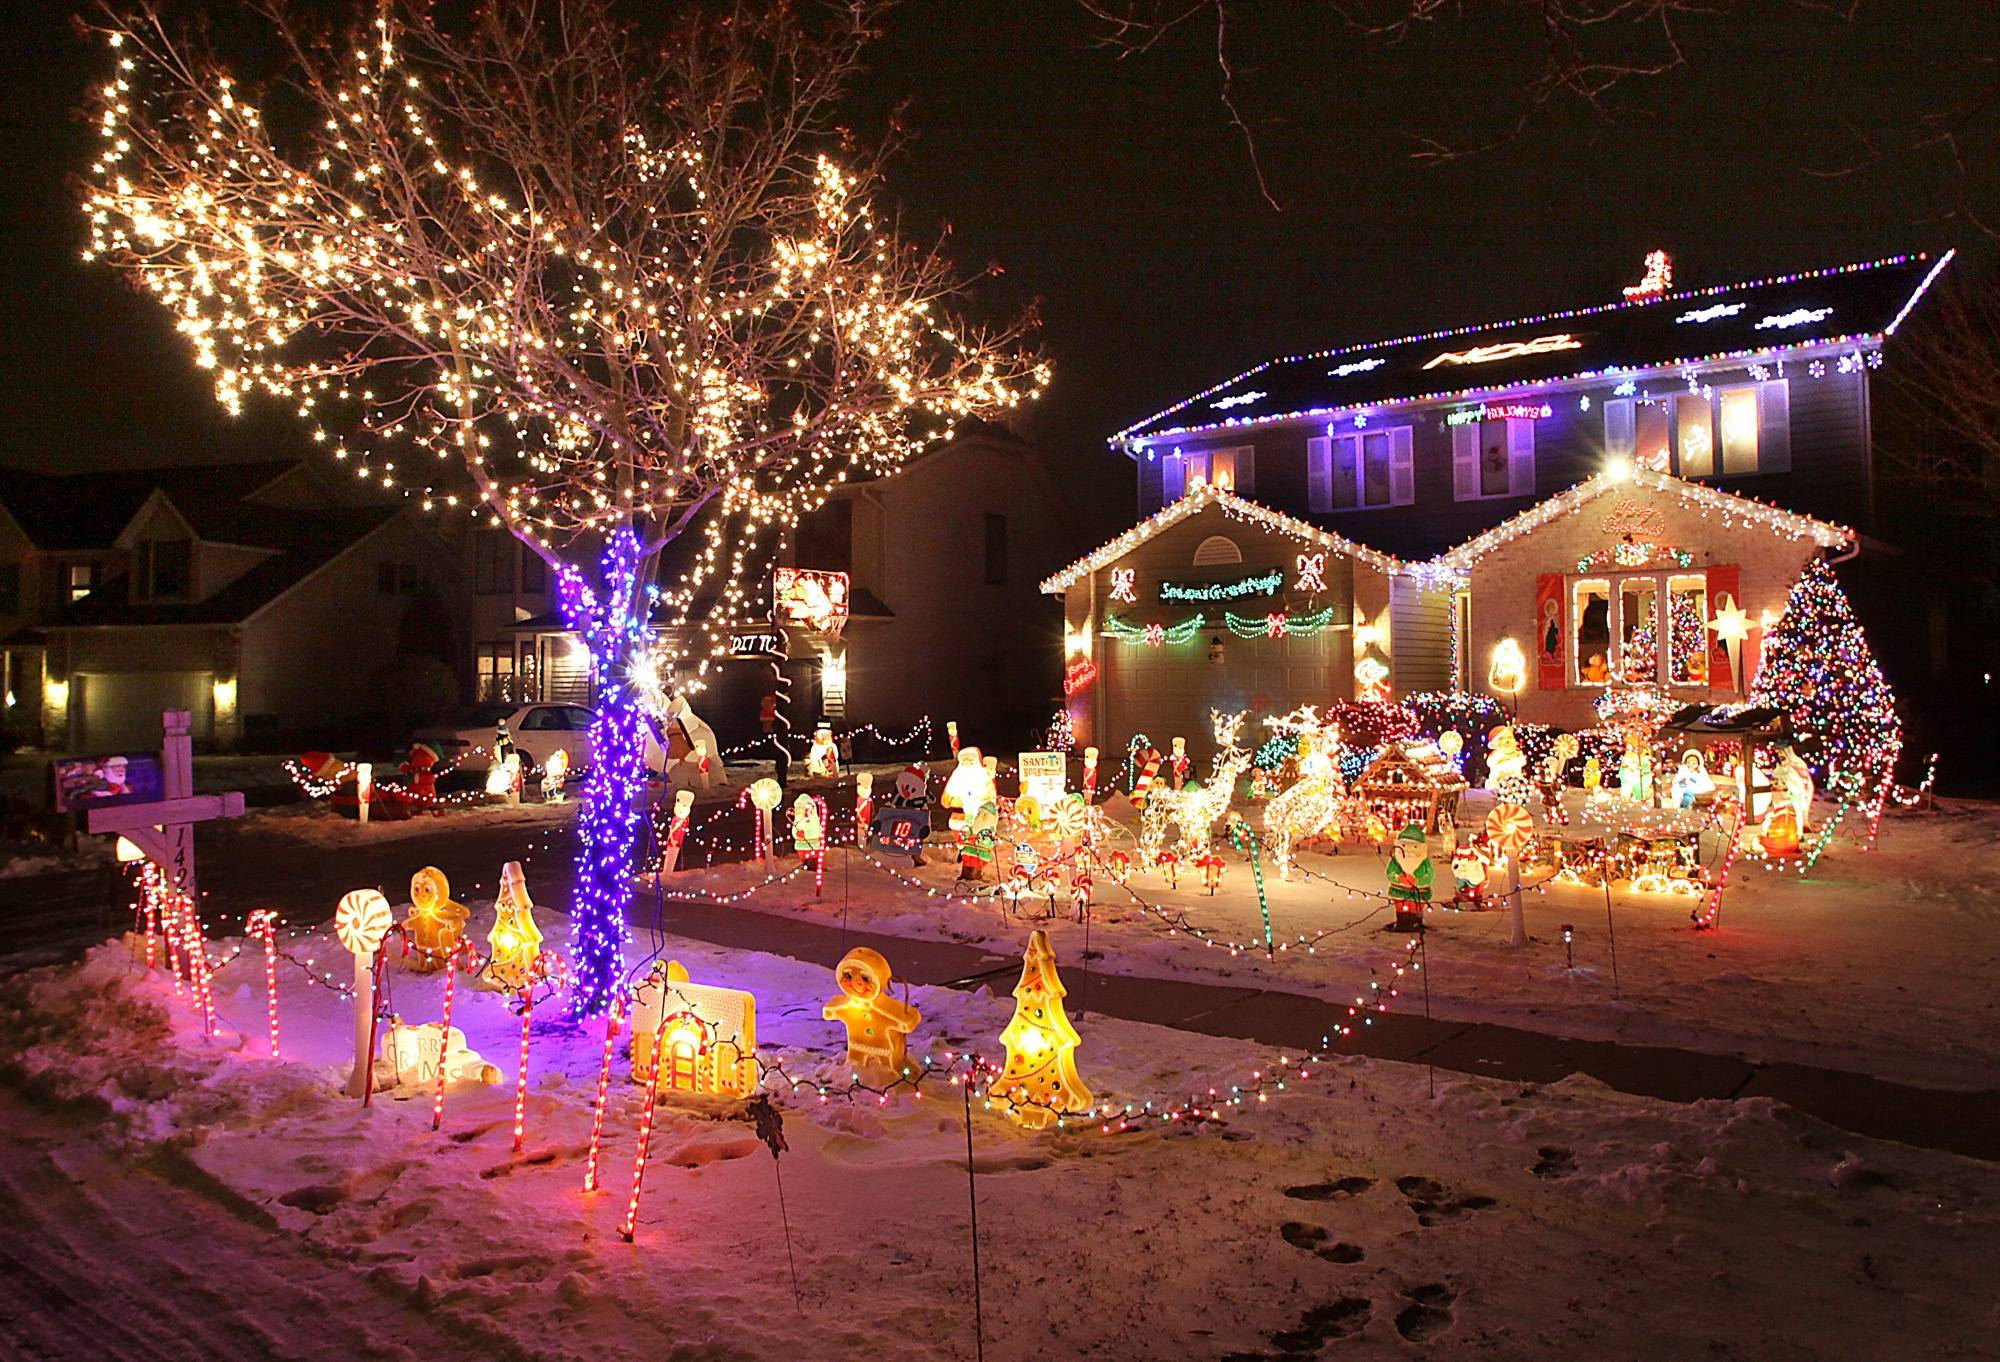 Bill and Jennifer Kyprianidis, of Elk Grove Village, were the winners of the 2010 Daily Herald holiday lights contest.